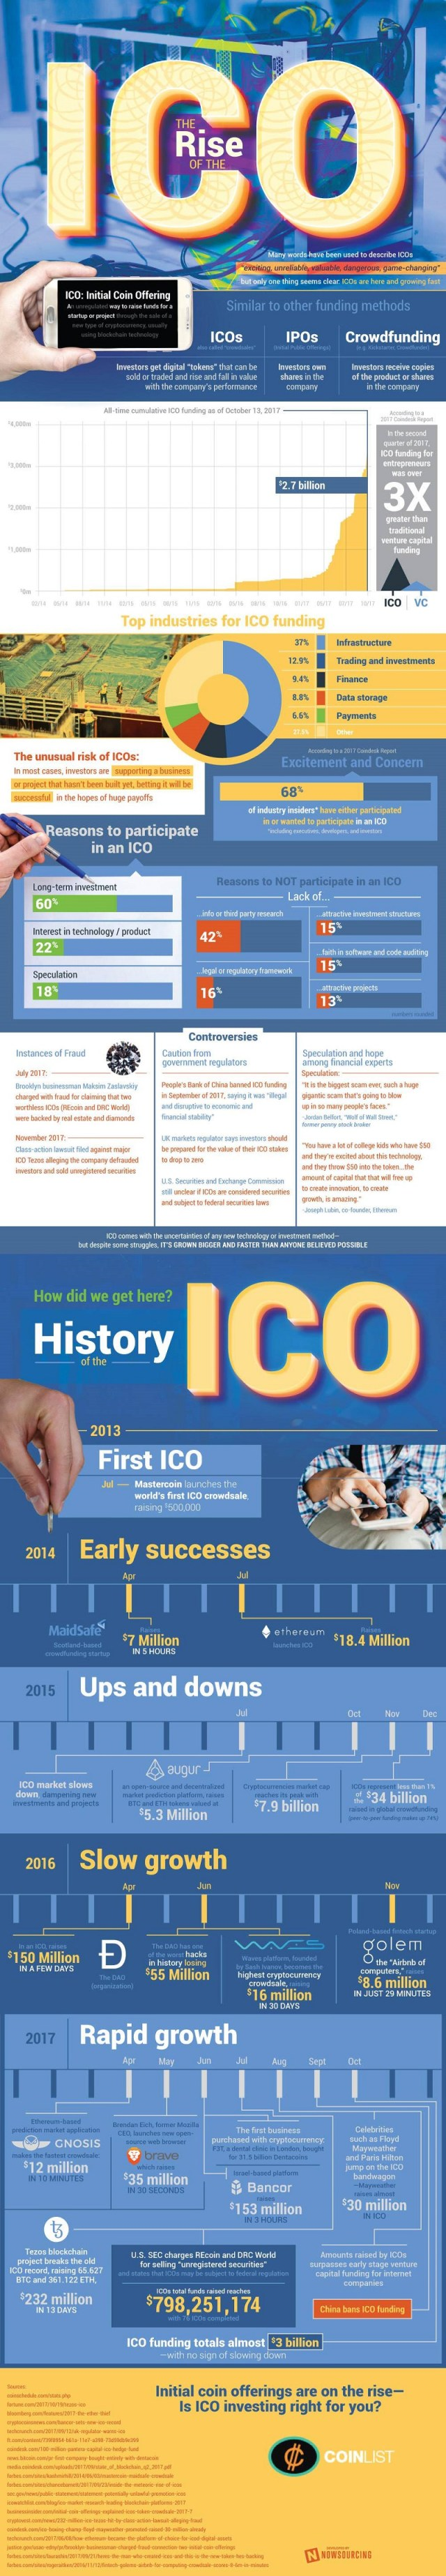 Rise of the ICO